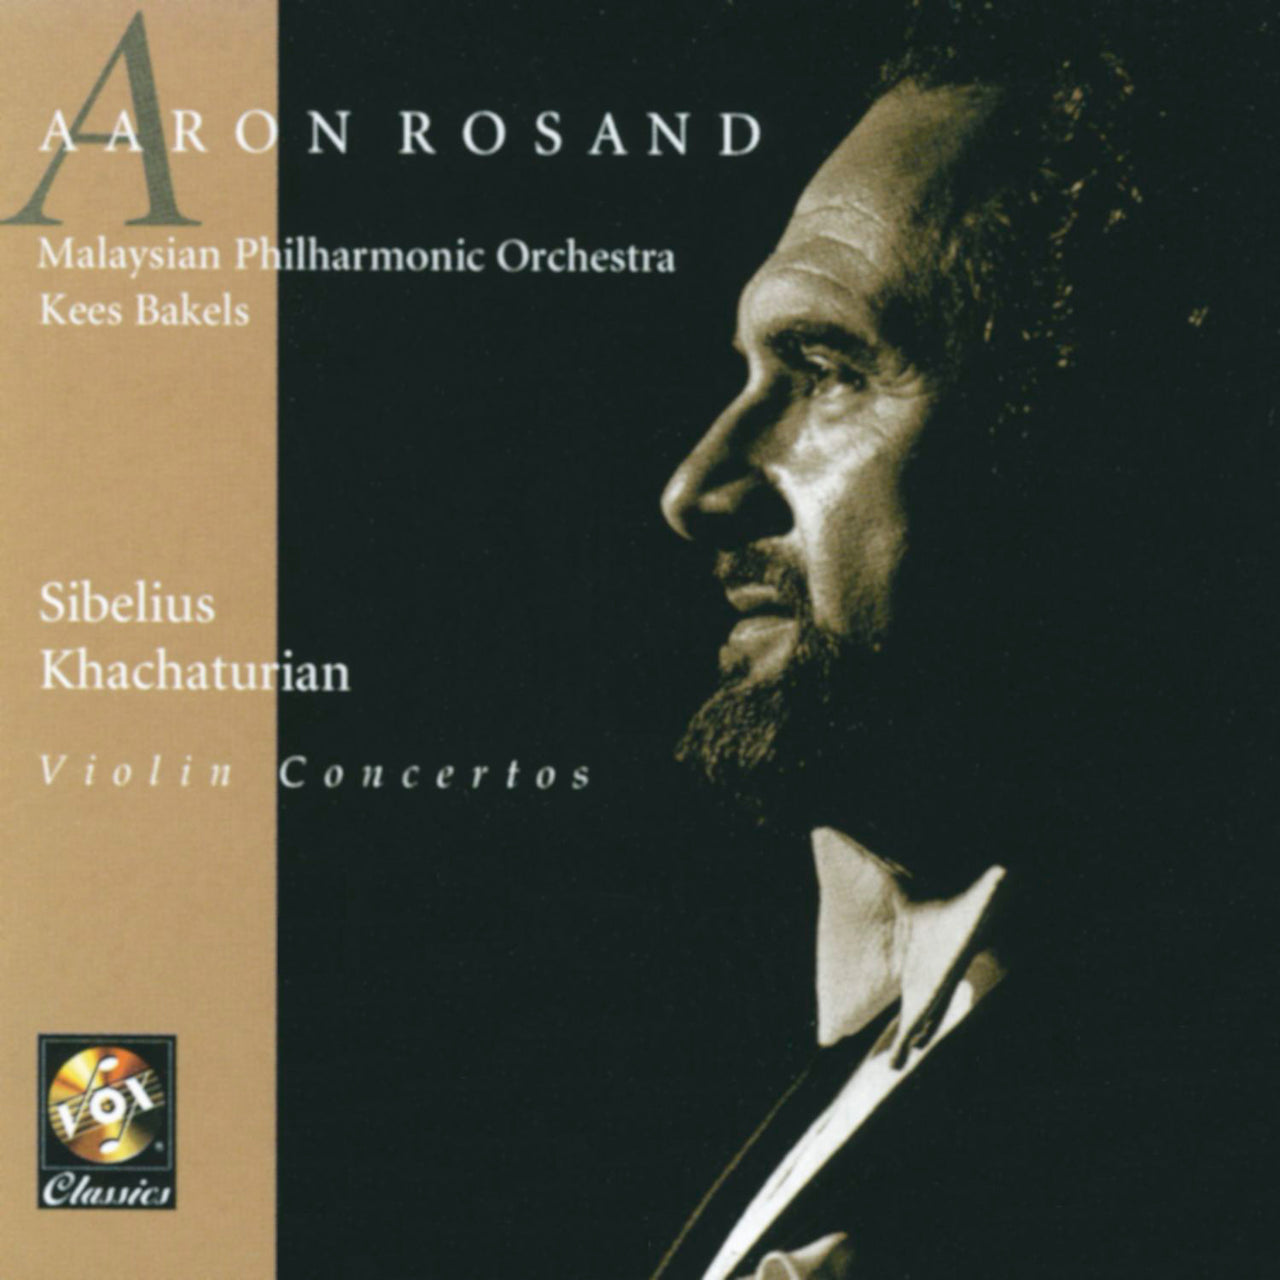 Rosand, Aaron : Plays Sibelius And Khatchaturian